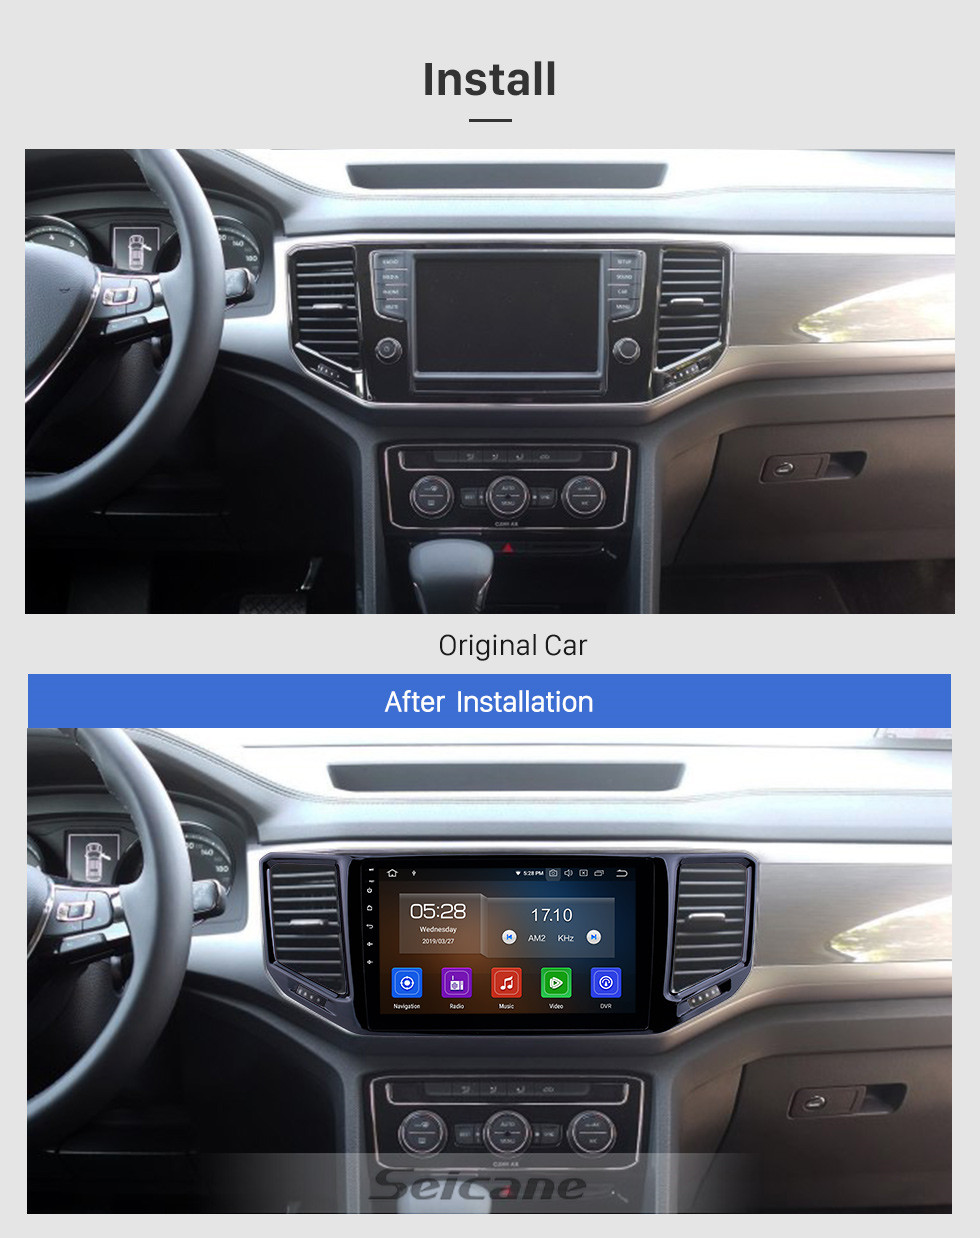 Seicane 10.1 inch Android 10.0 Radio for 2017-2018 VW Volkswagen Teramont Bluetooth HD Touchscreen GPS Navigation Carplay USB support TPMS DAB+ DVR